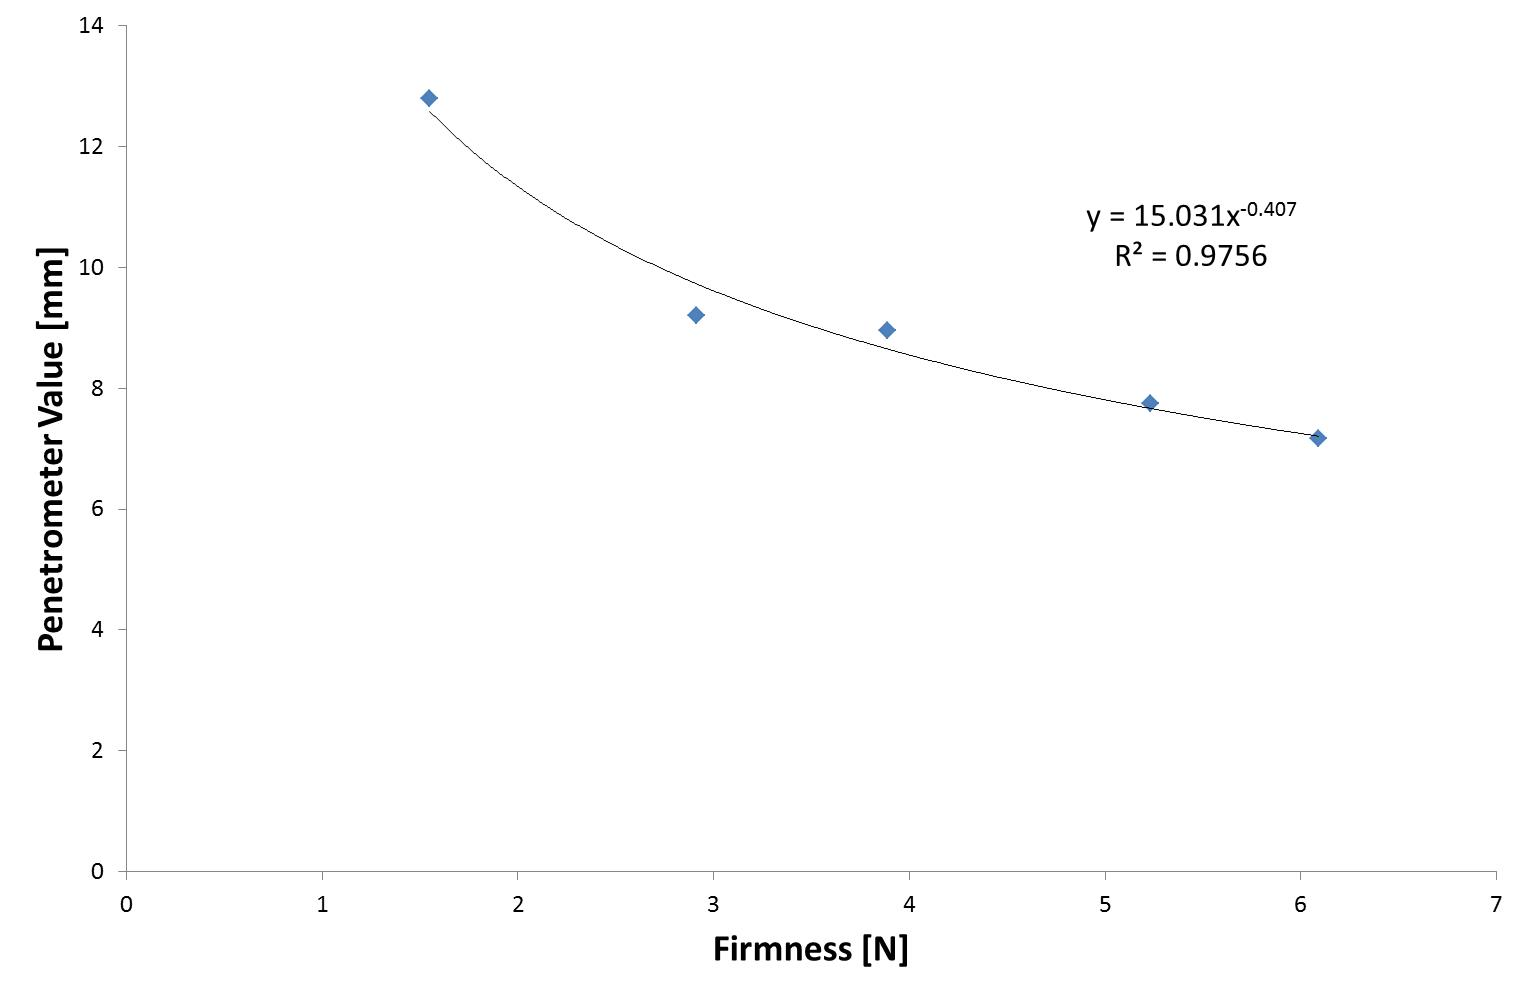 Figure 3. Power-fit correlation between penetrometer values at 10s and firmness for 3mm cylinder penetration method